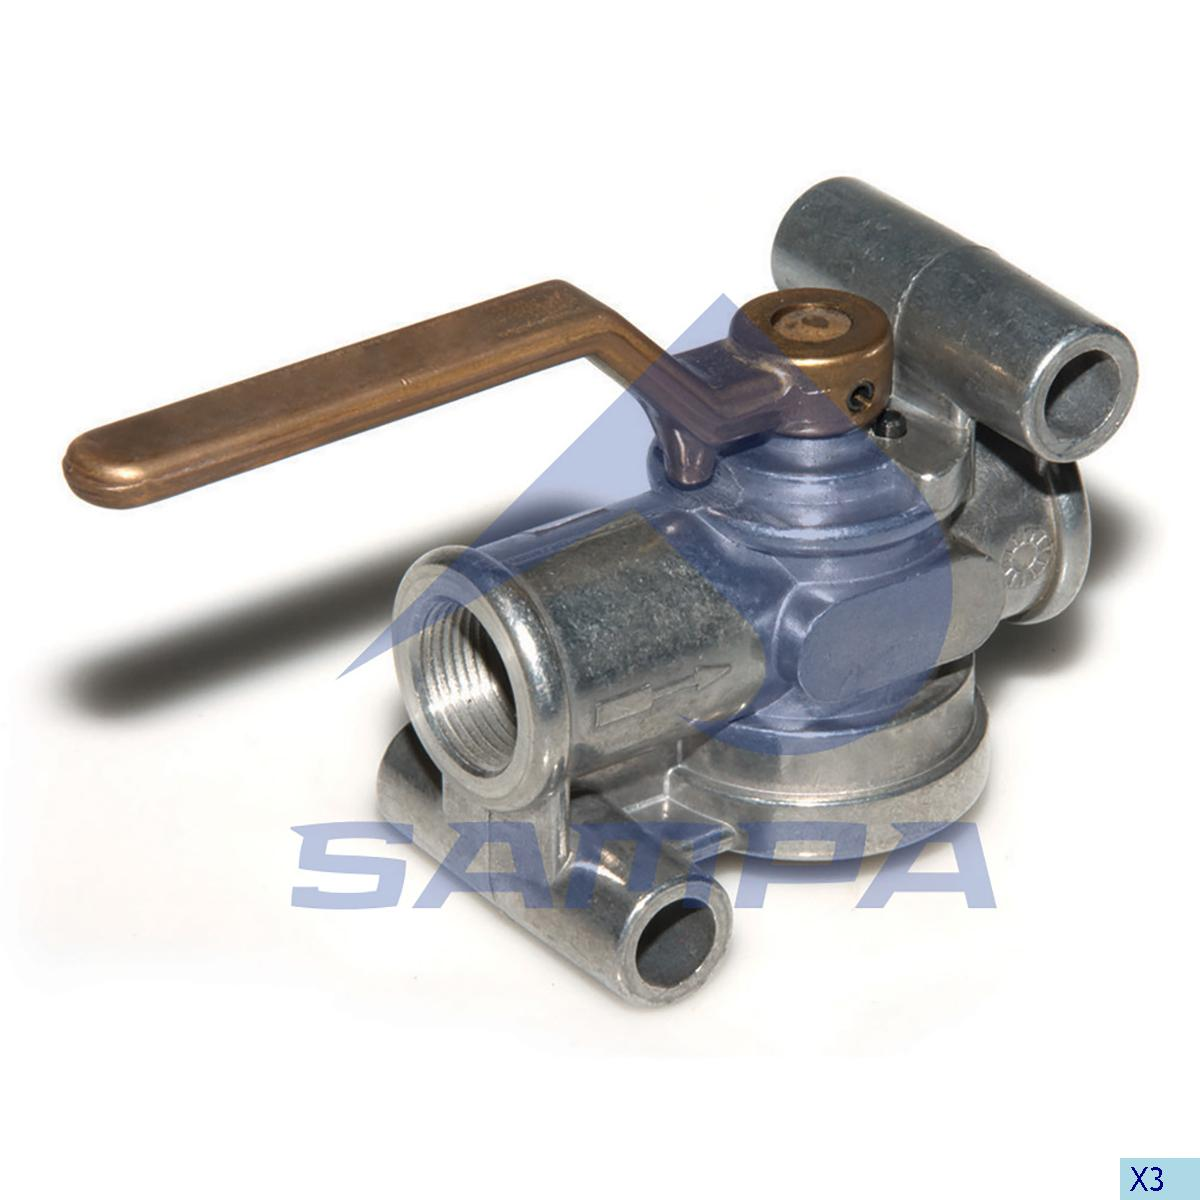 Shut-Off Valve, Daf, Compressed Air System